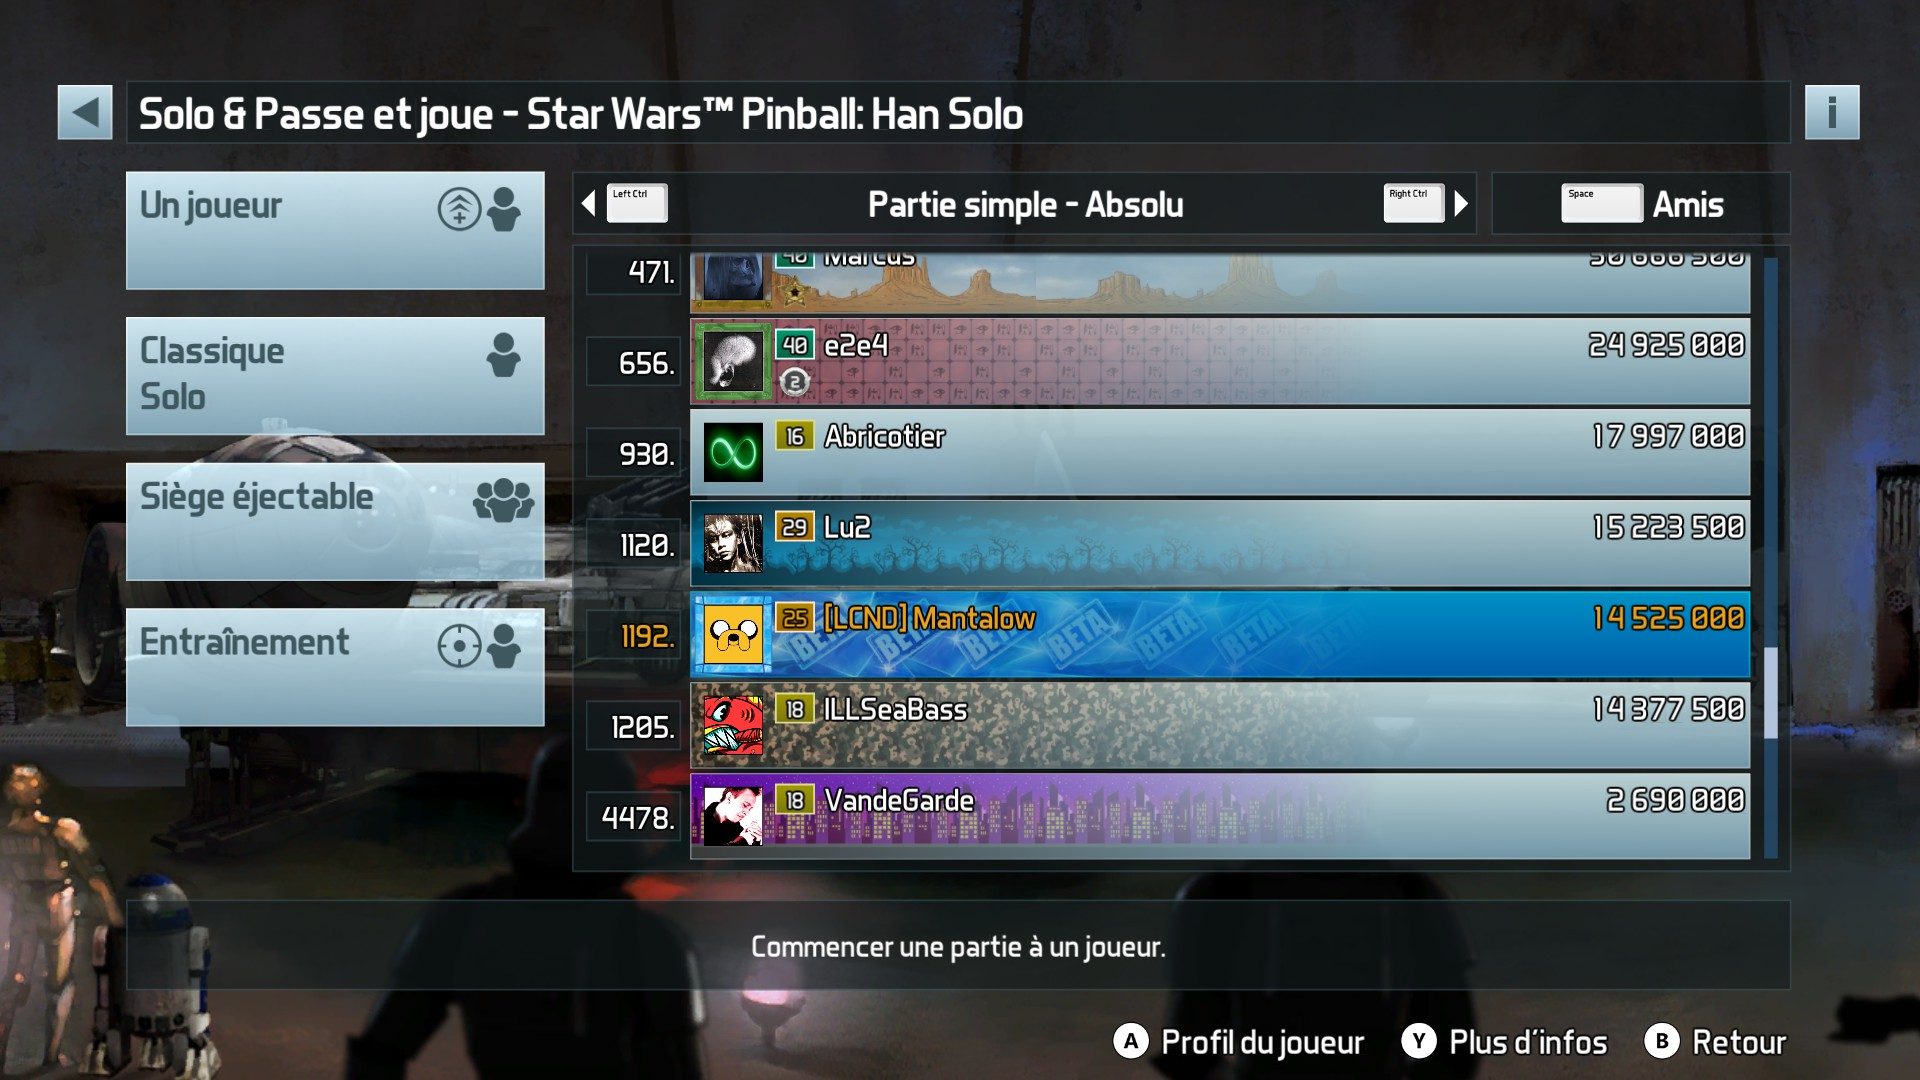 Mantalow: Pinball FX3: Star Wars Pinball: Han Solo (PC) 14,525,000 points on 2017-12-19 04:38:46